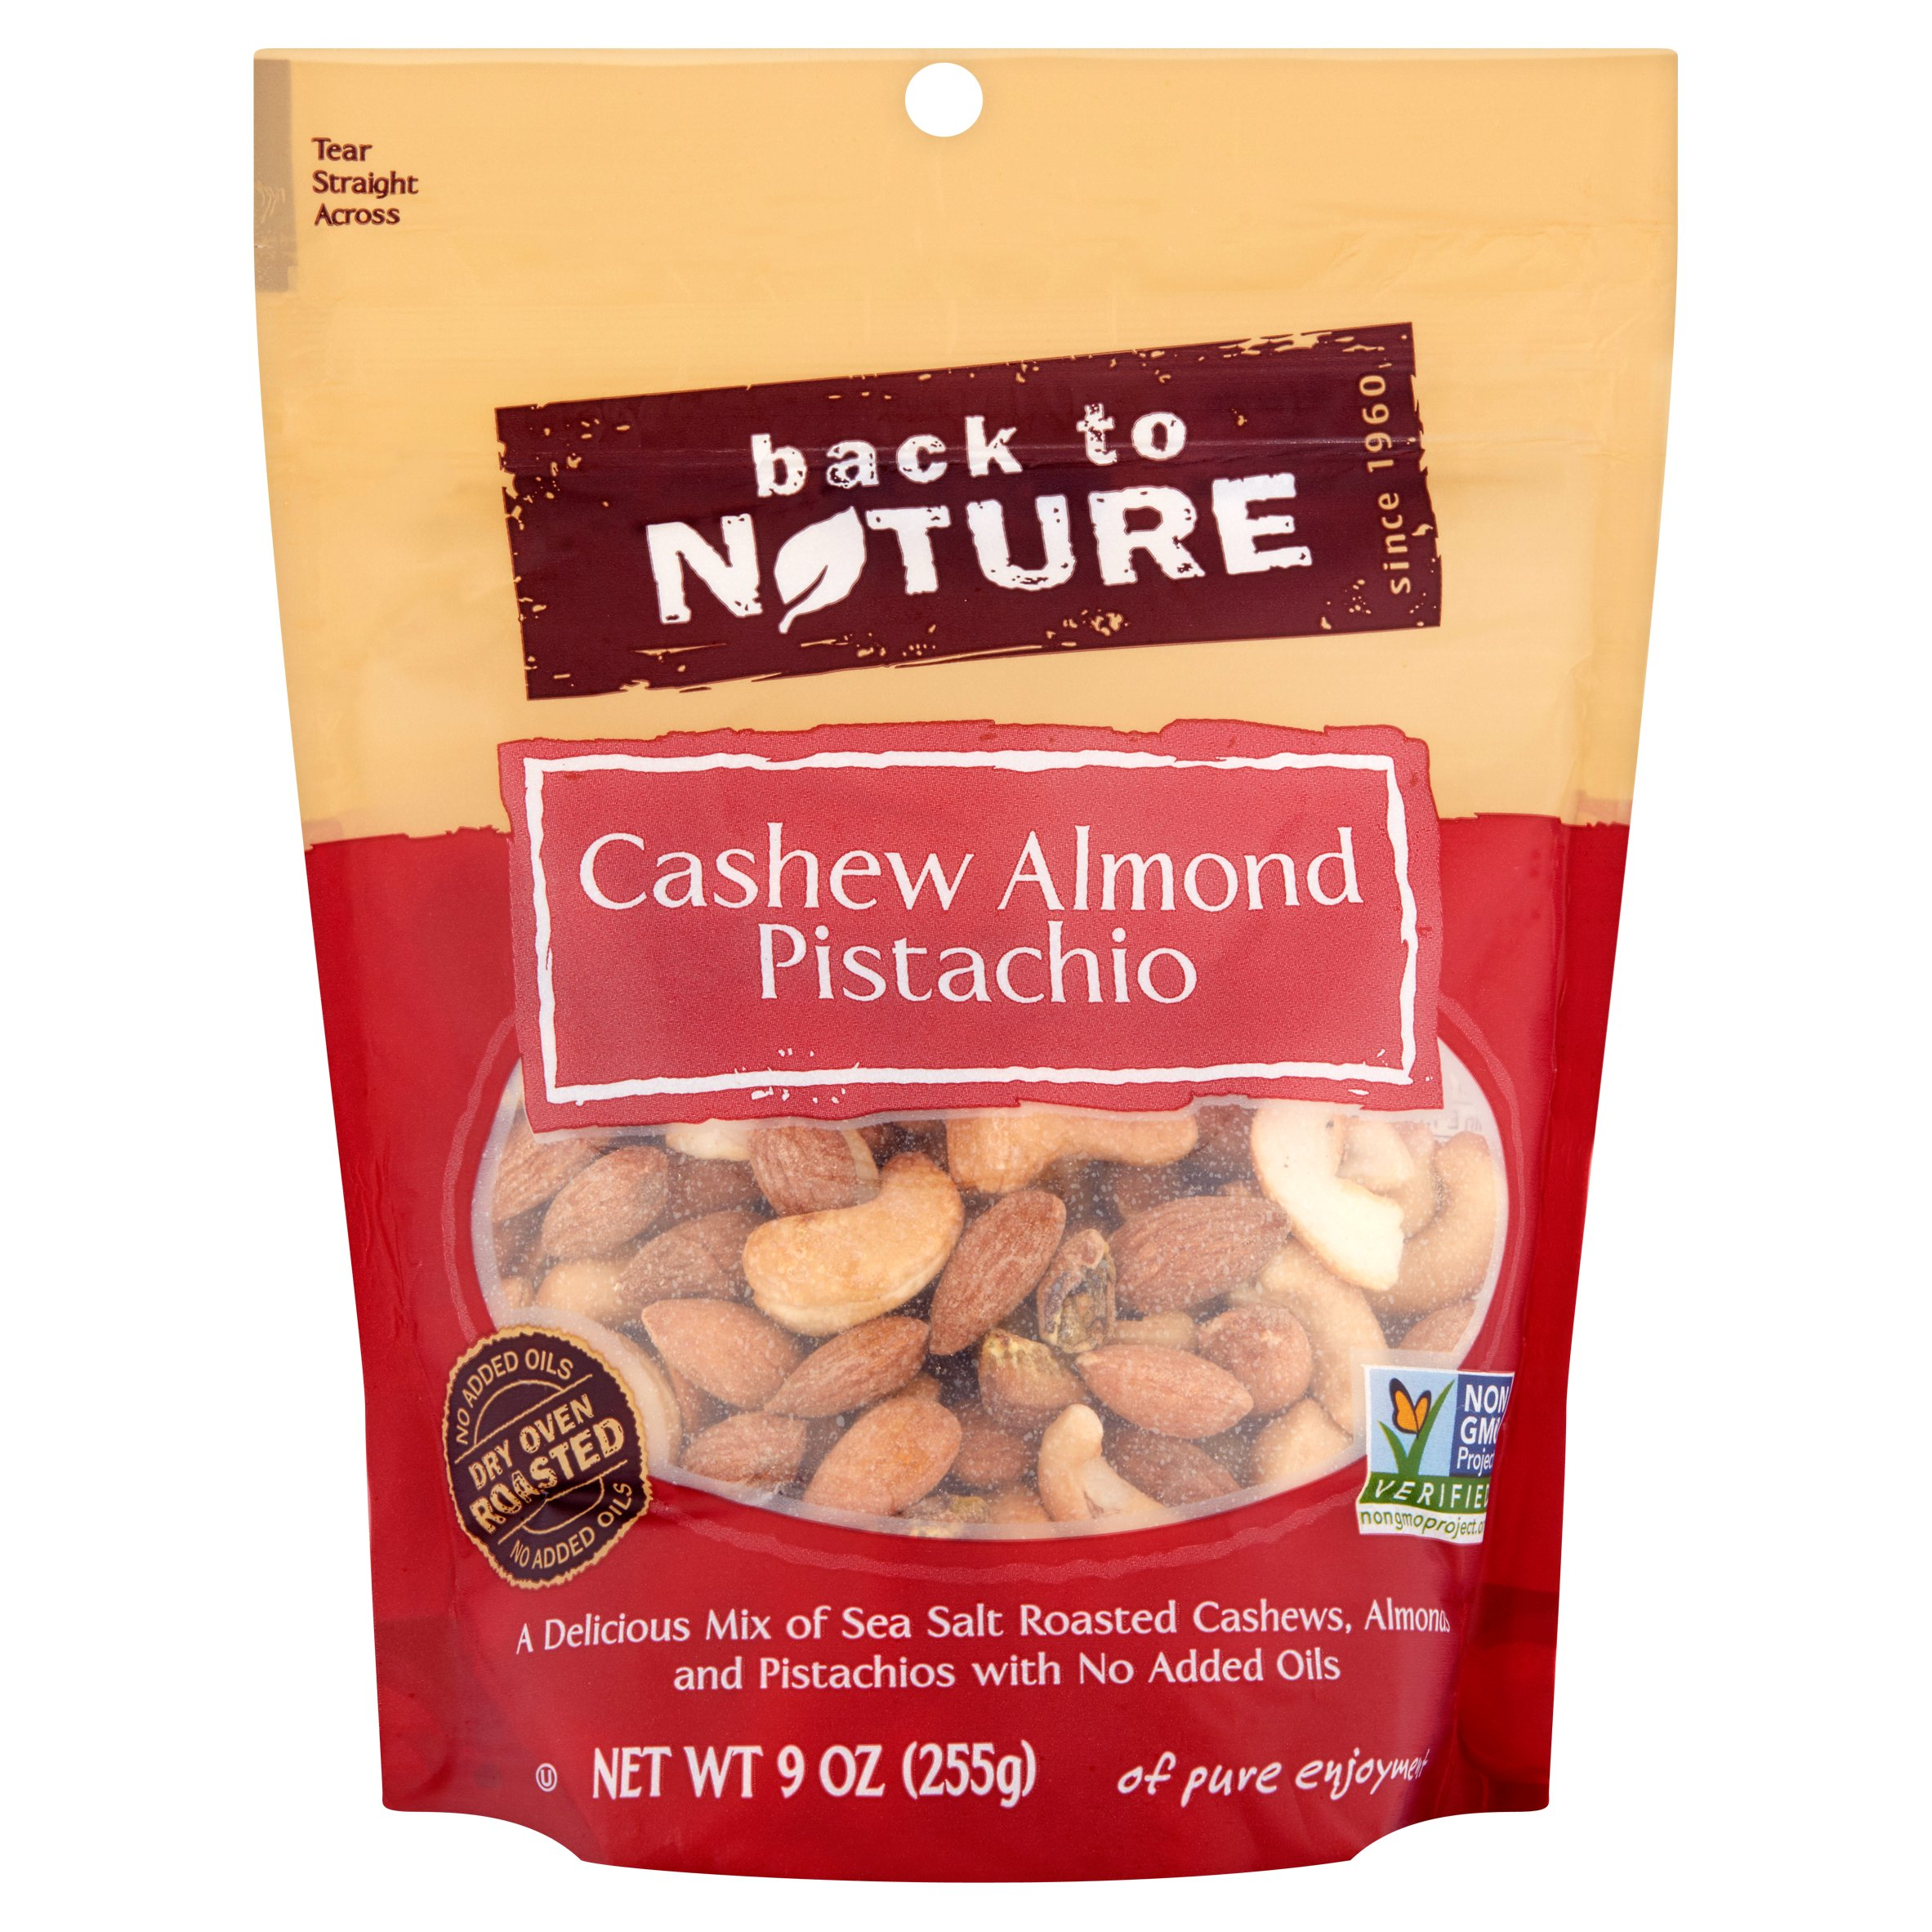 Back to Nature Cashew Almond Pistachio, 9 oz, 9 pack